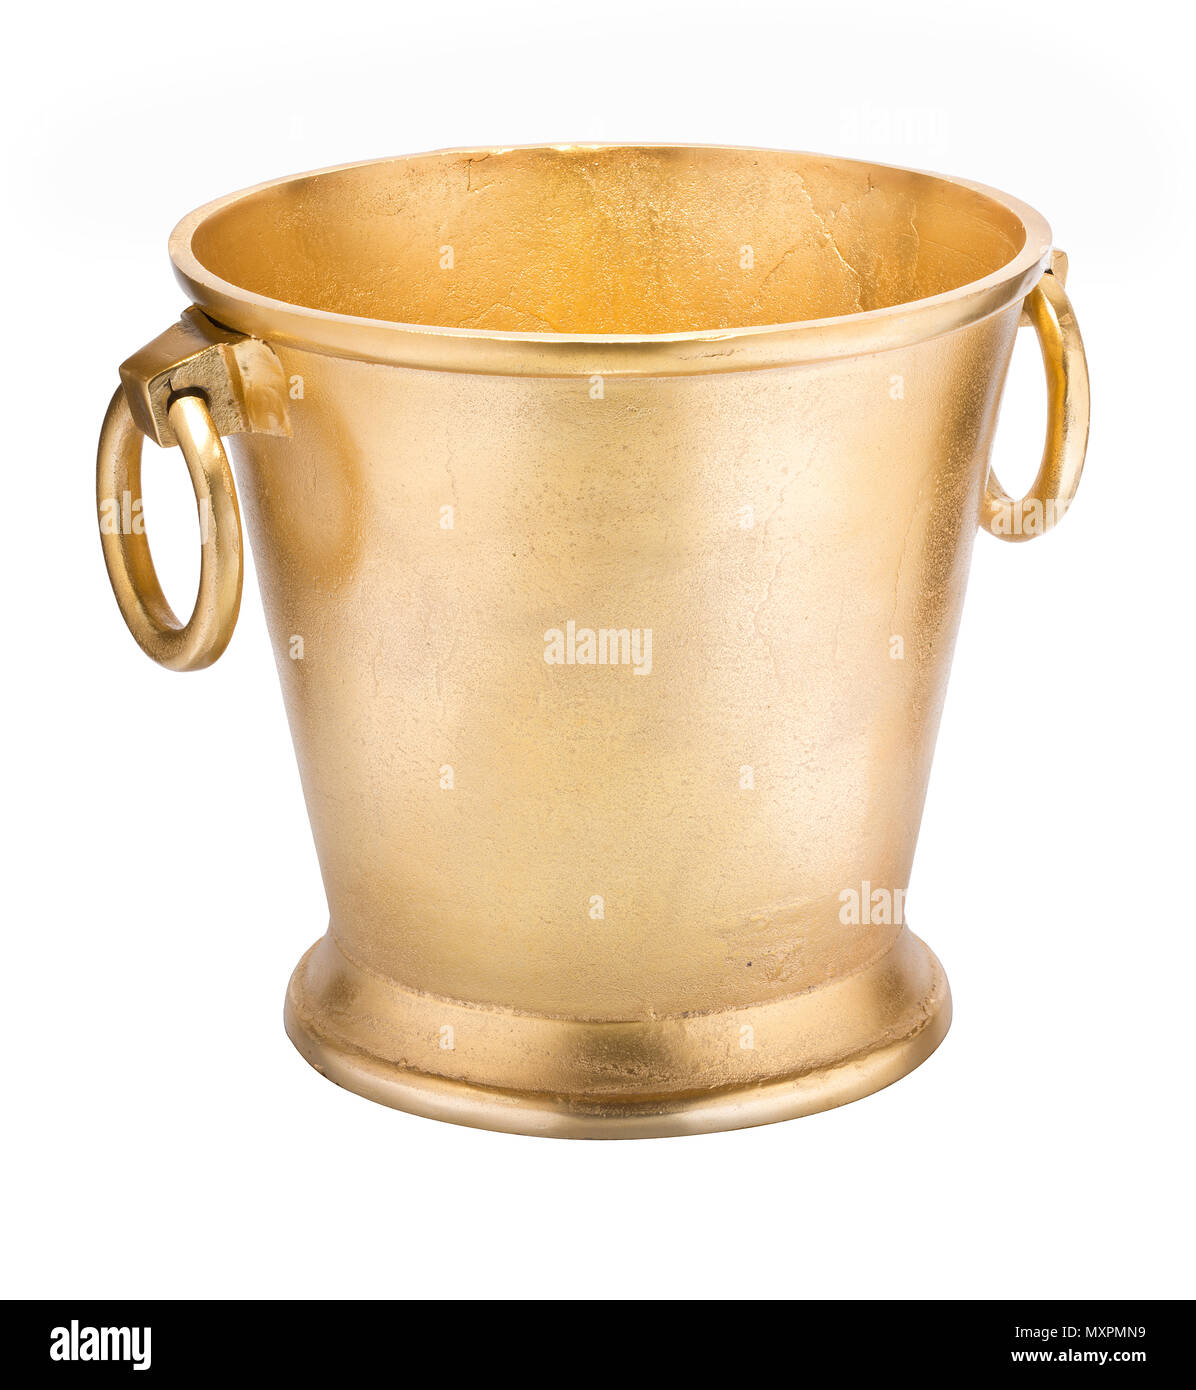 Gold coloured metal ice bucket, for cooling wine bottles or other drinks. - Stock Image